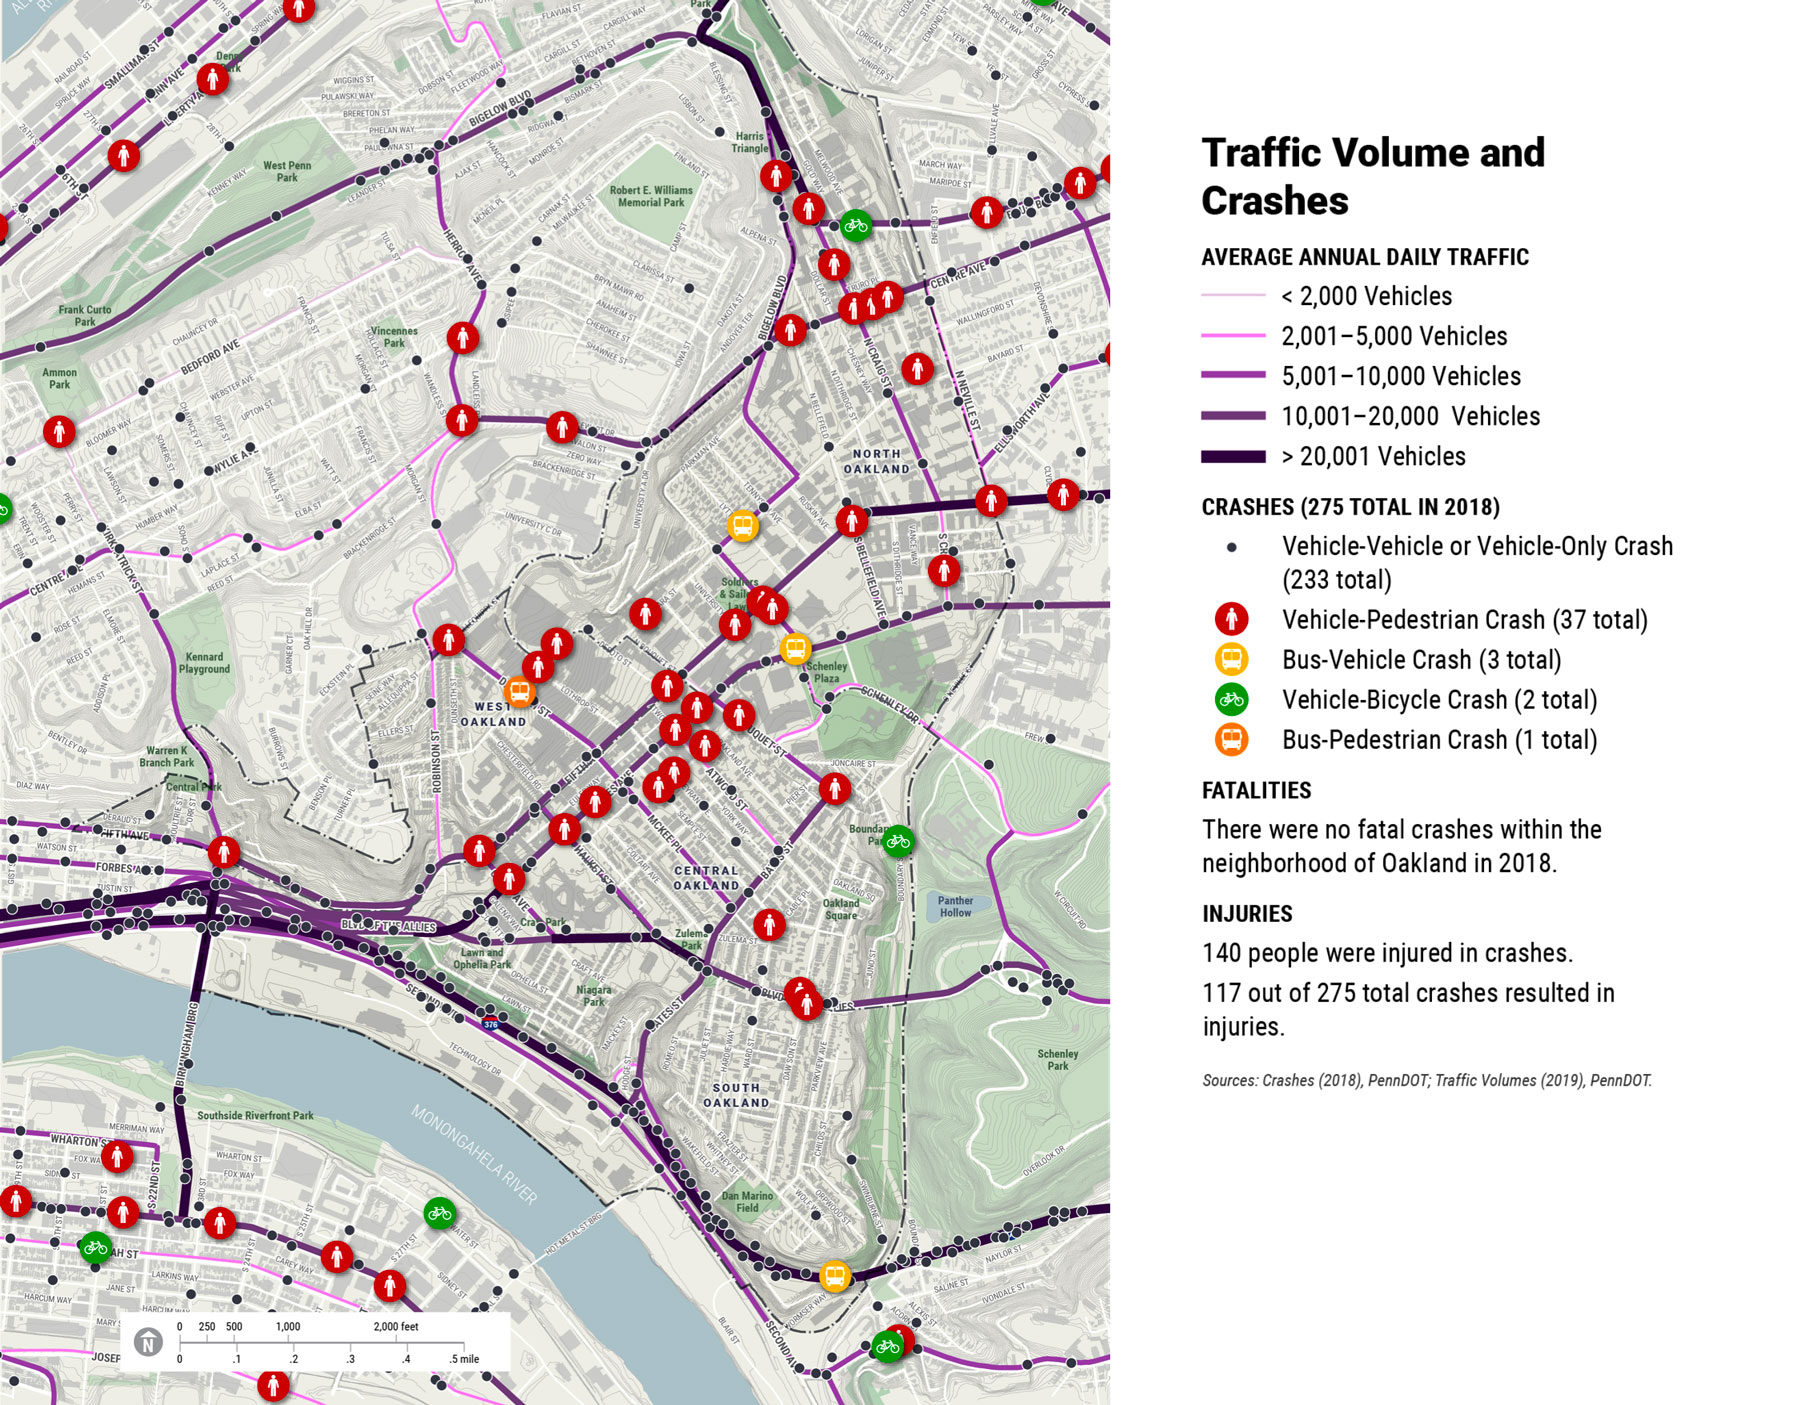 Map showing traffic volume and crashes in Oakland. Source: Crashes (2018), PennDOT; Traffic Volumes (2019), PennDOT.